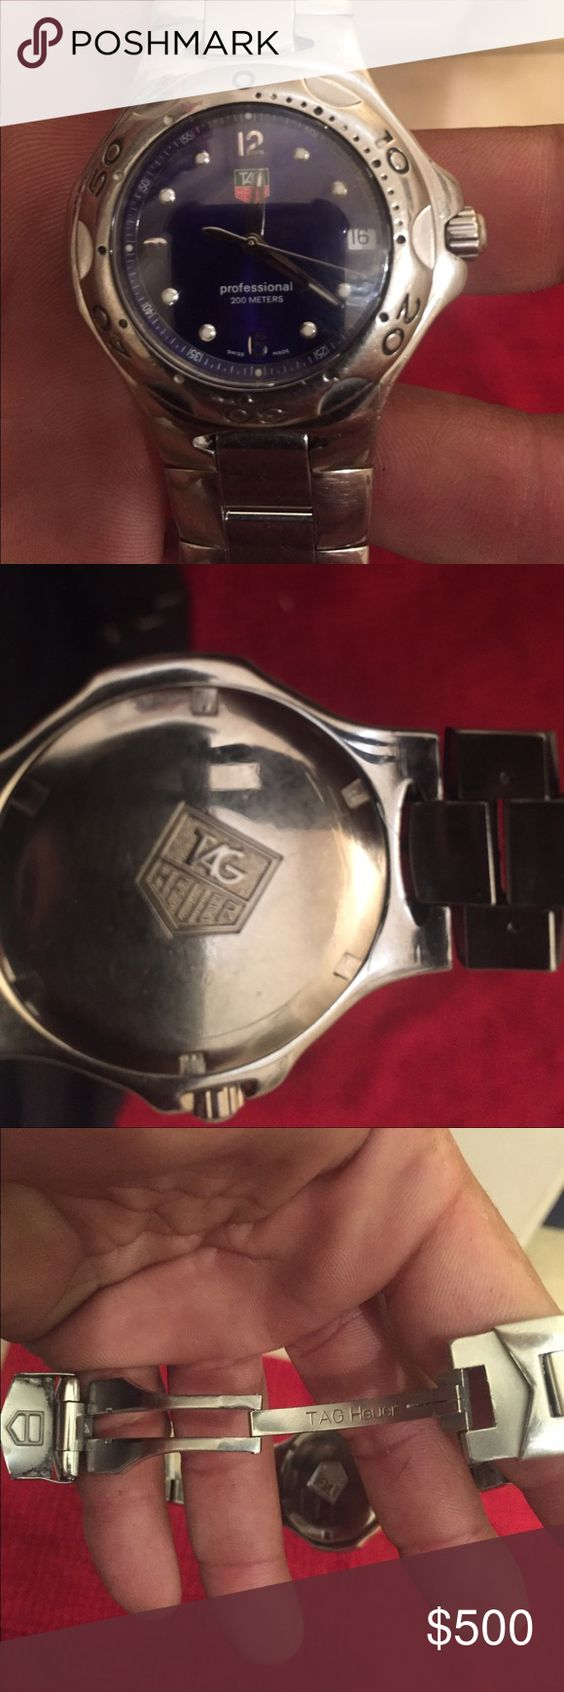 Tag Heuer Unisex Professional 200 meters watch. Vintage Tag silver watch, worn but in great condition. The sapphire crystal is flawless. Tag Heuer Jewelry